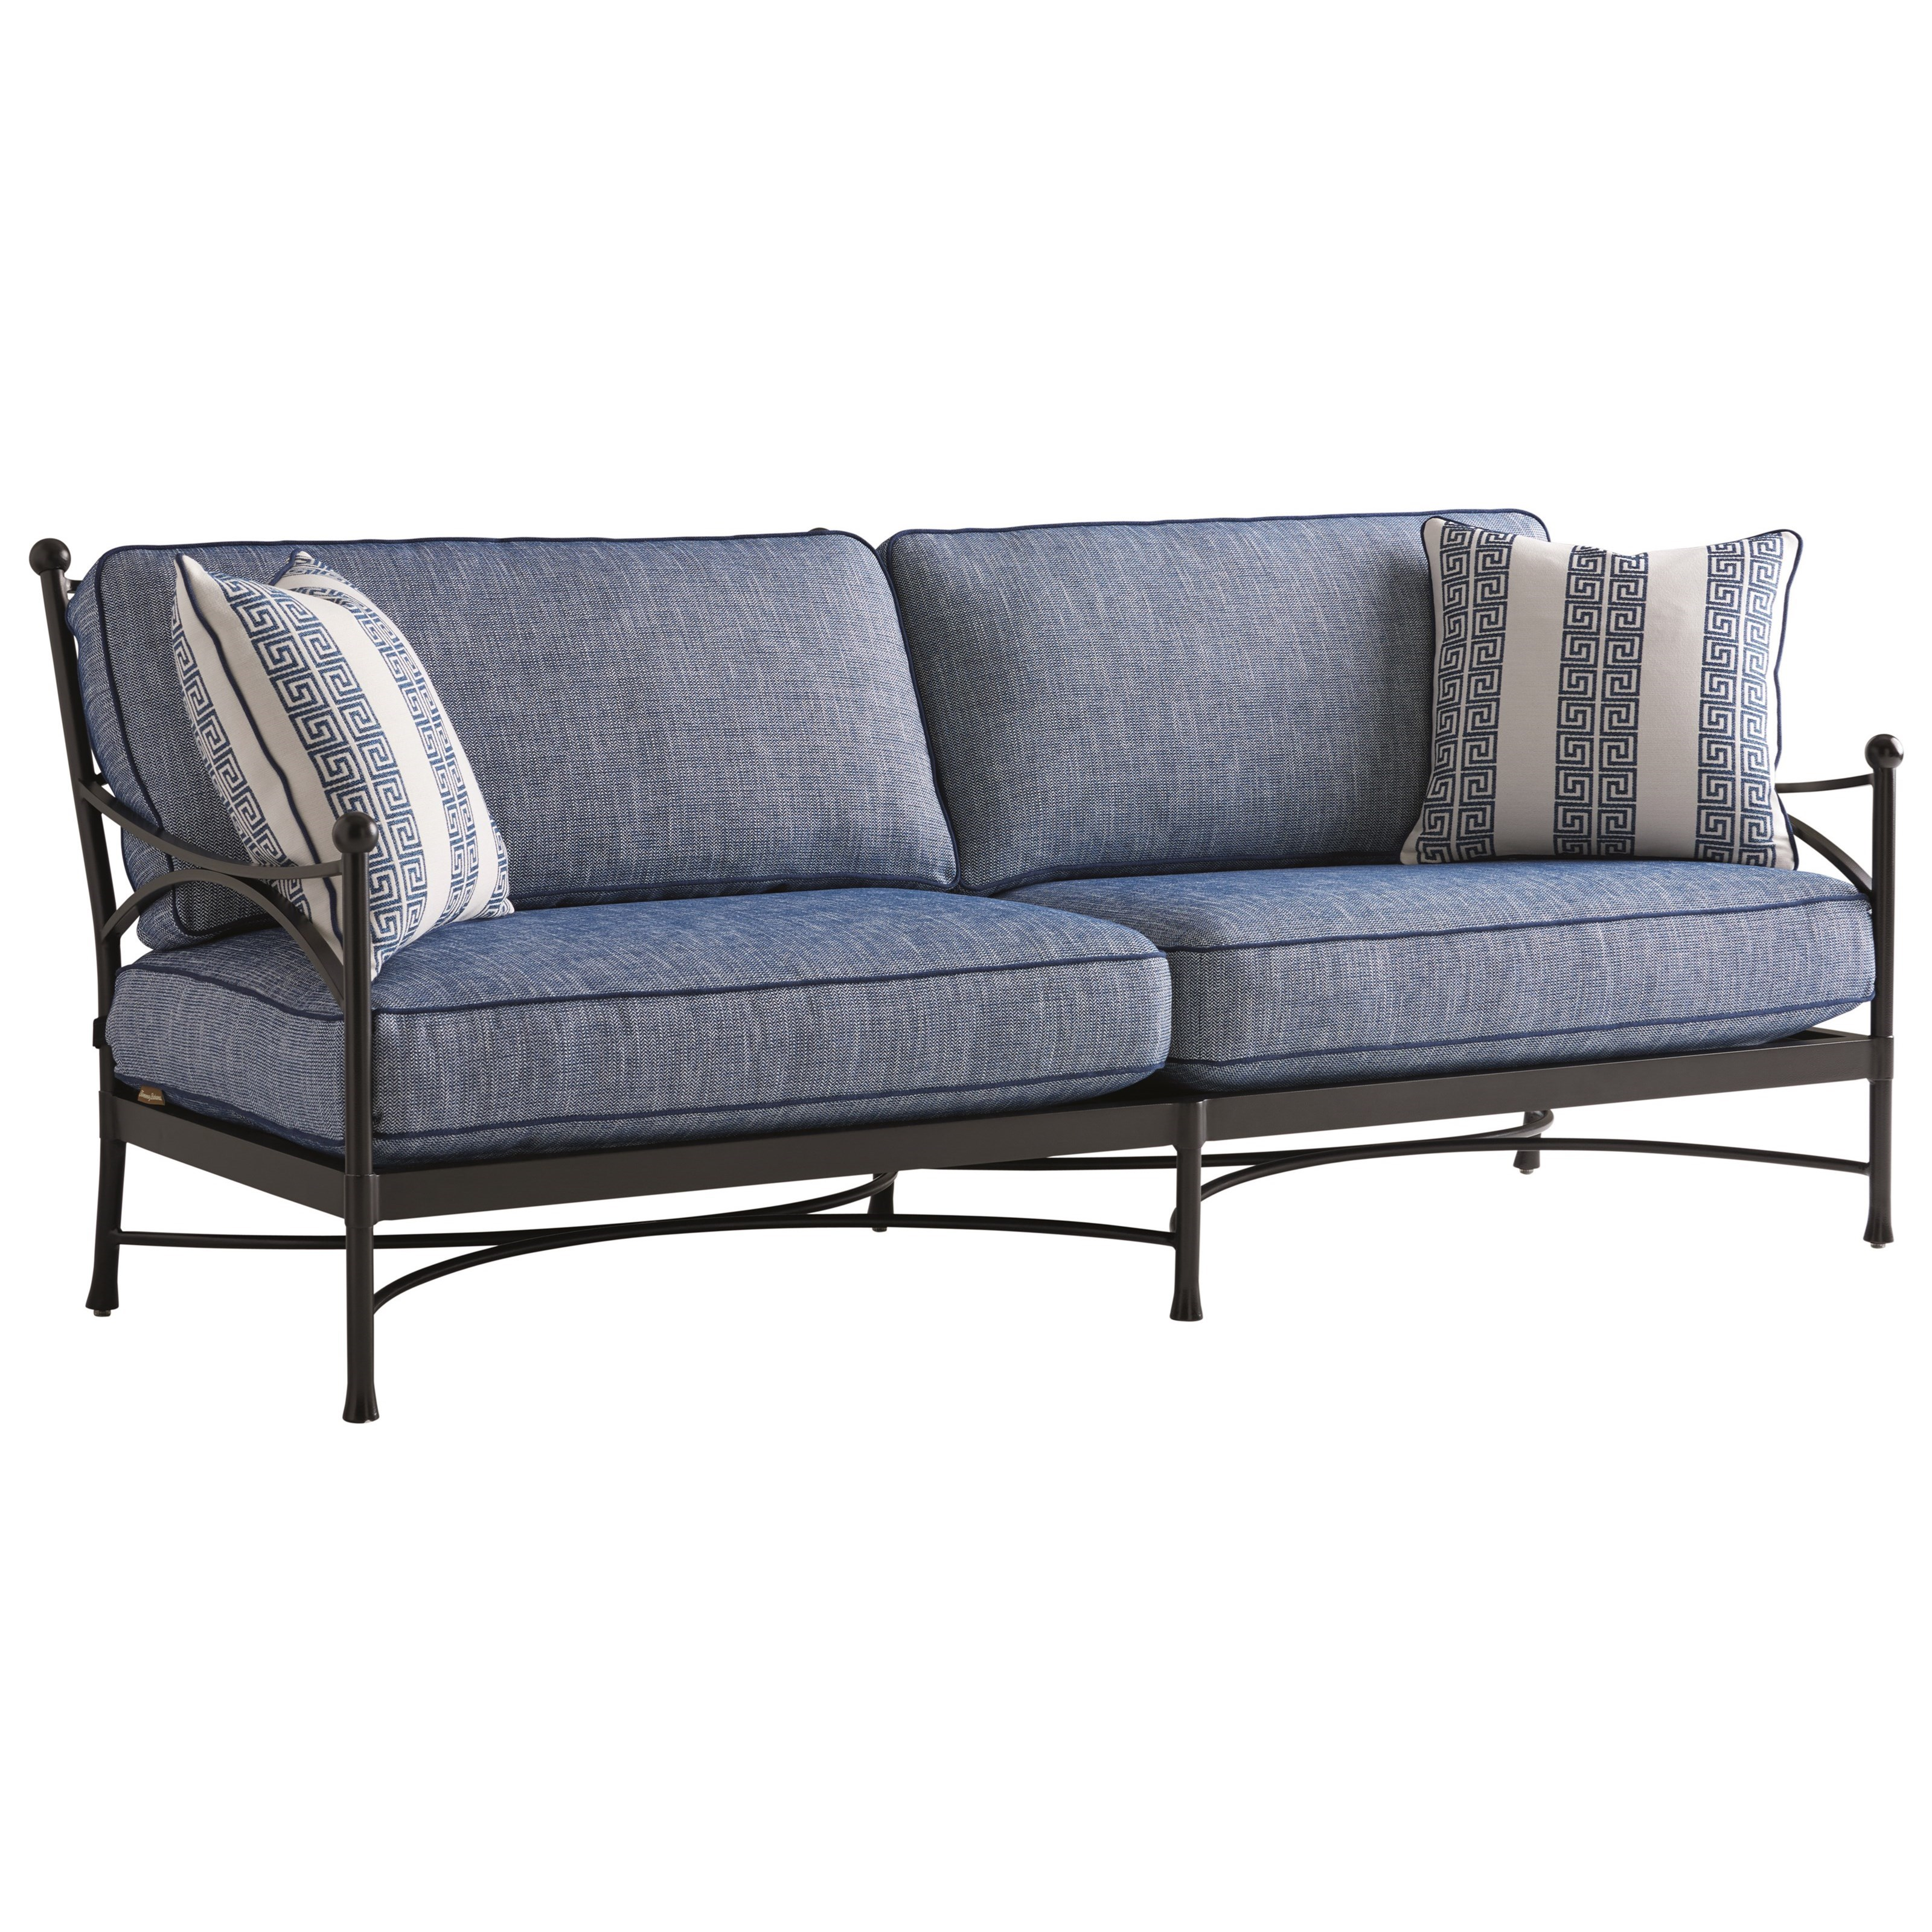 Pavlova Outdoor Sofa by Tommy Bahama Outdoor Living at Baer's Furniture